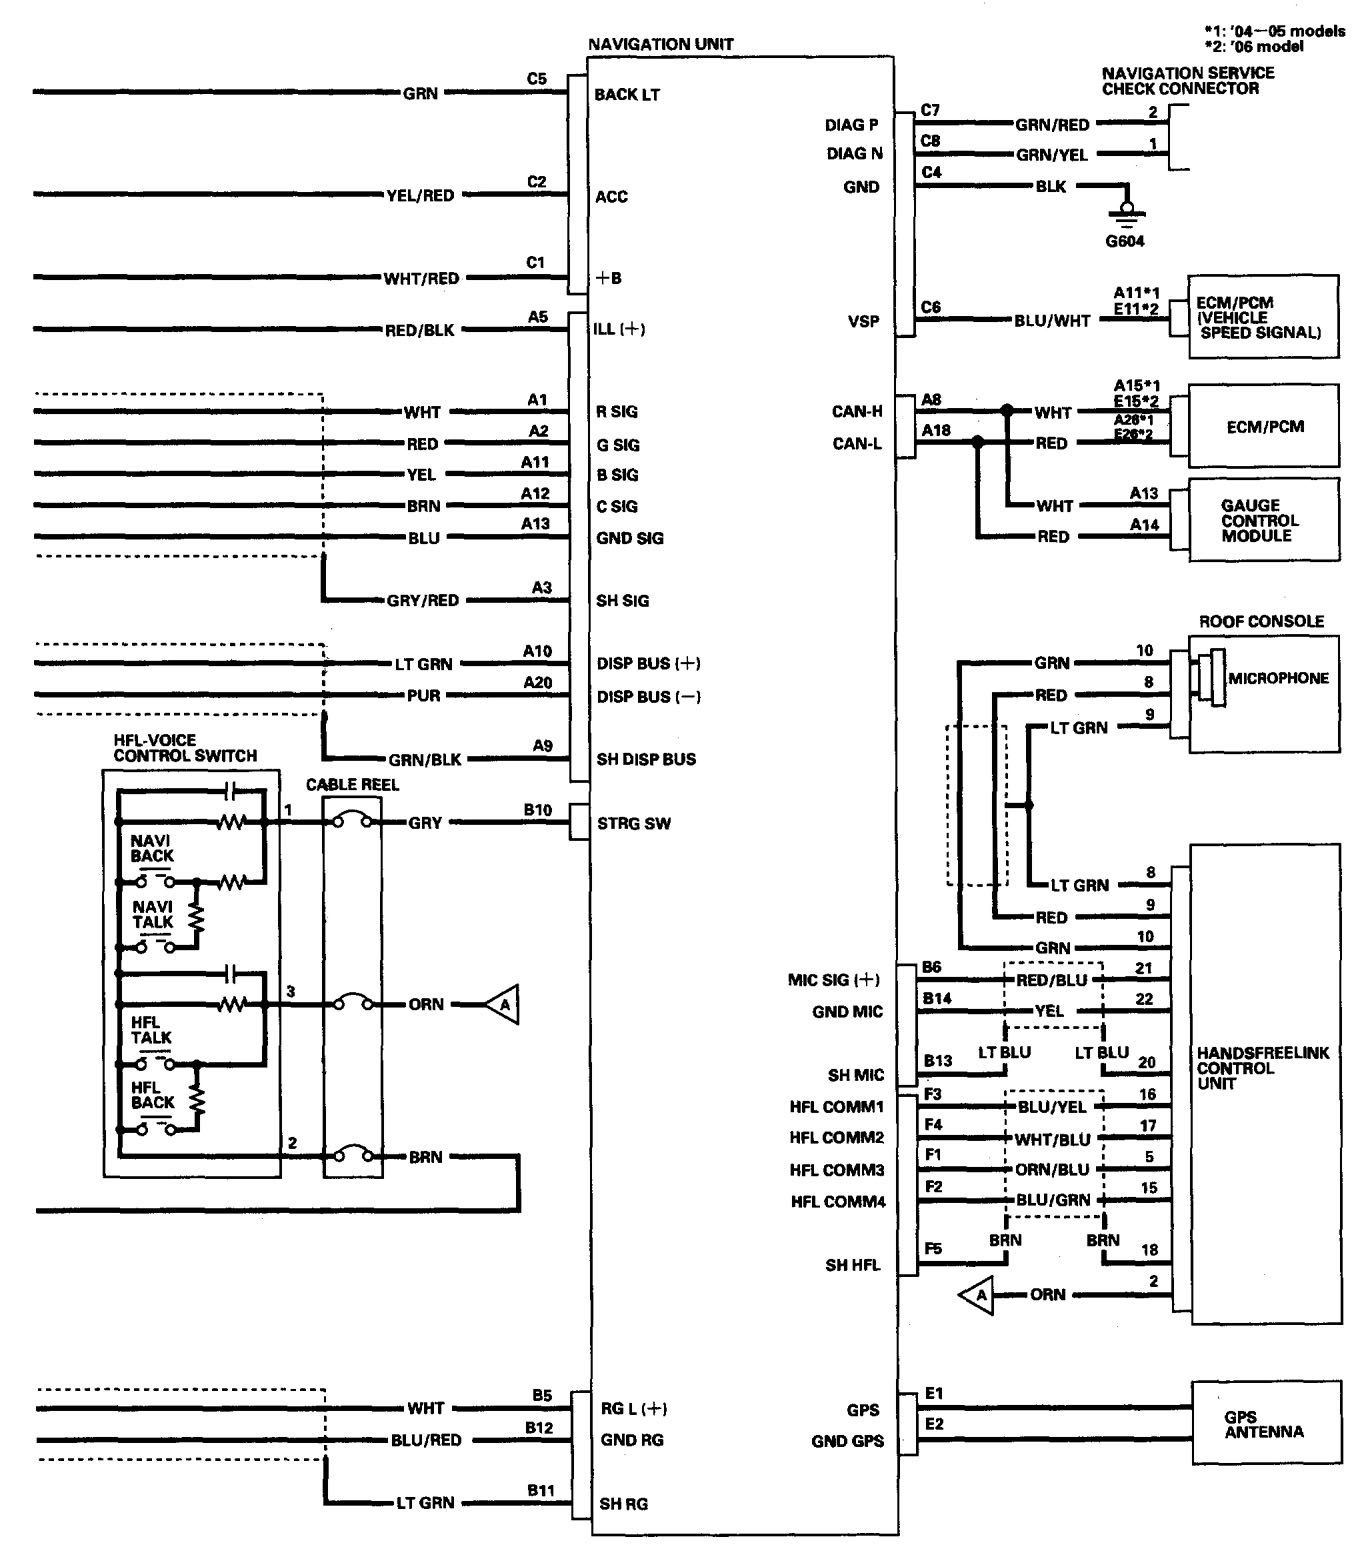 Acura Mdx 2001 Navigation Radio Wiring Diagram - Wiring Liry ... on acura mdx parts diagram, acura mdx ac diagram, acura mdx brakes, acura mdx battery, acura tl wiring diagram, acura mdx oil pump, acura mdx belt diagram, acura cl wiring diagram, acura mdx headlights, acura mdx transmission problems, acura rl wiring diagram, acura mdx alternator diagram, acura mdx relay, acura mdx transmission slipping, acura engine diagrams, acura mdx fuel pump, acura mdx spark plugs, acura mdx engine problems, acura mdx fuse box, acura rsx wiring-diagram,